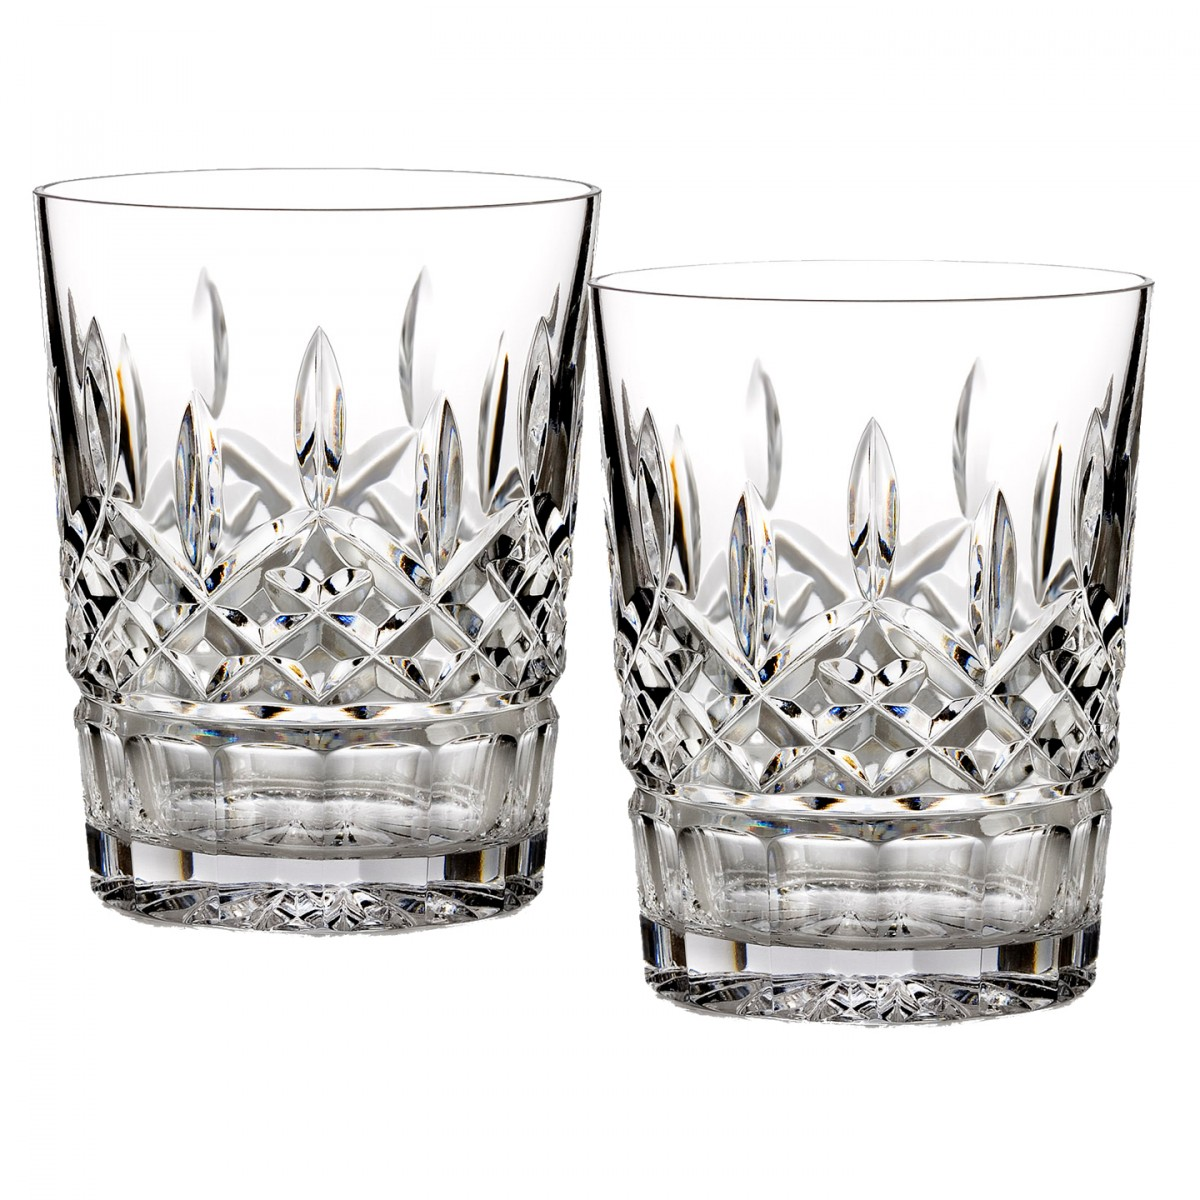 Whitelaw-Stewart Waterford Lismore 12oz Double Old Fashioned, Set of 2